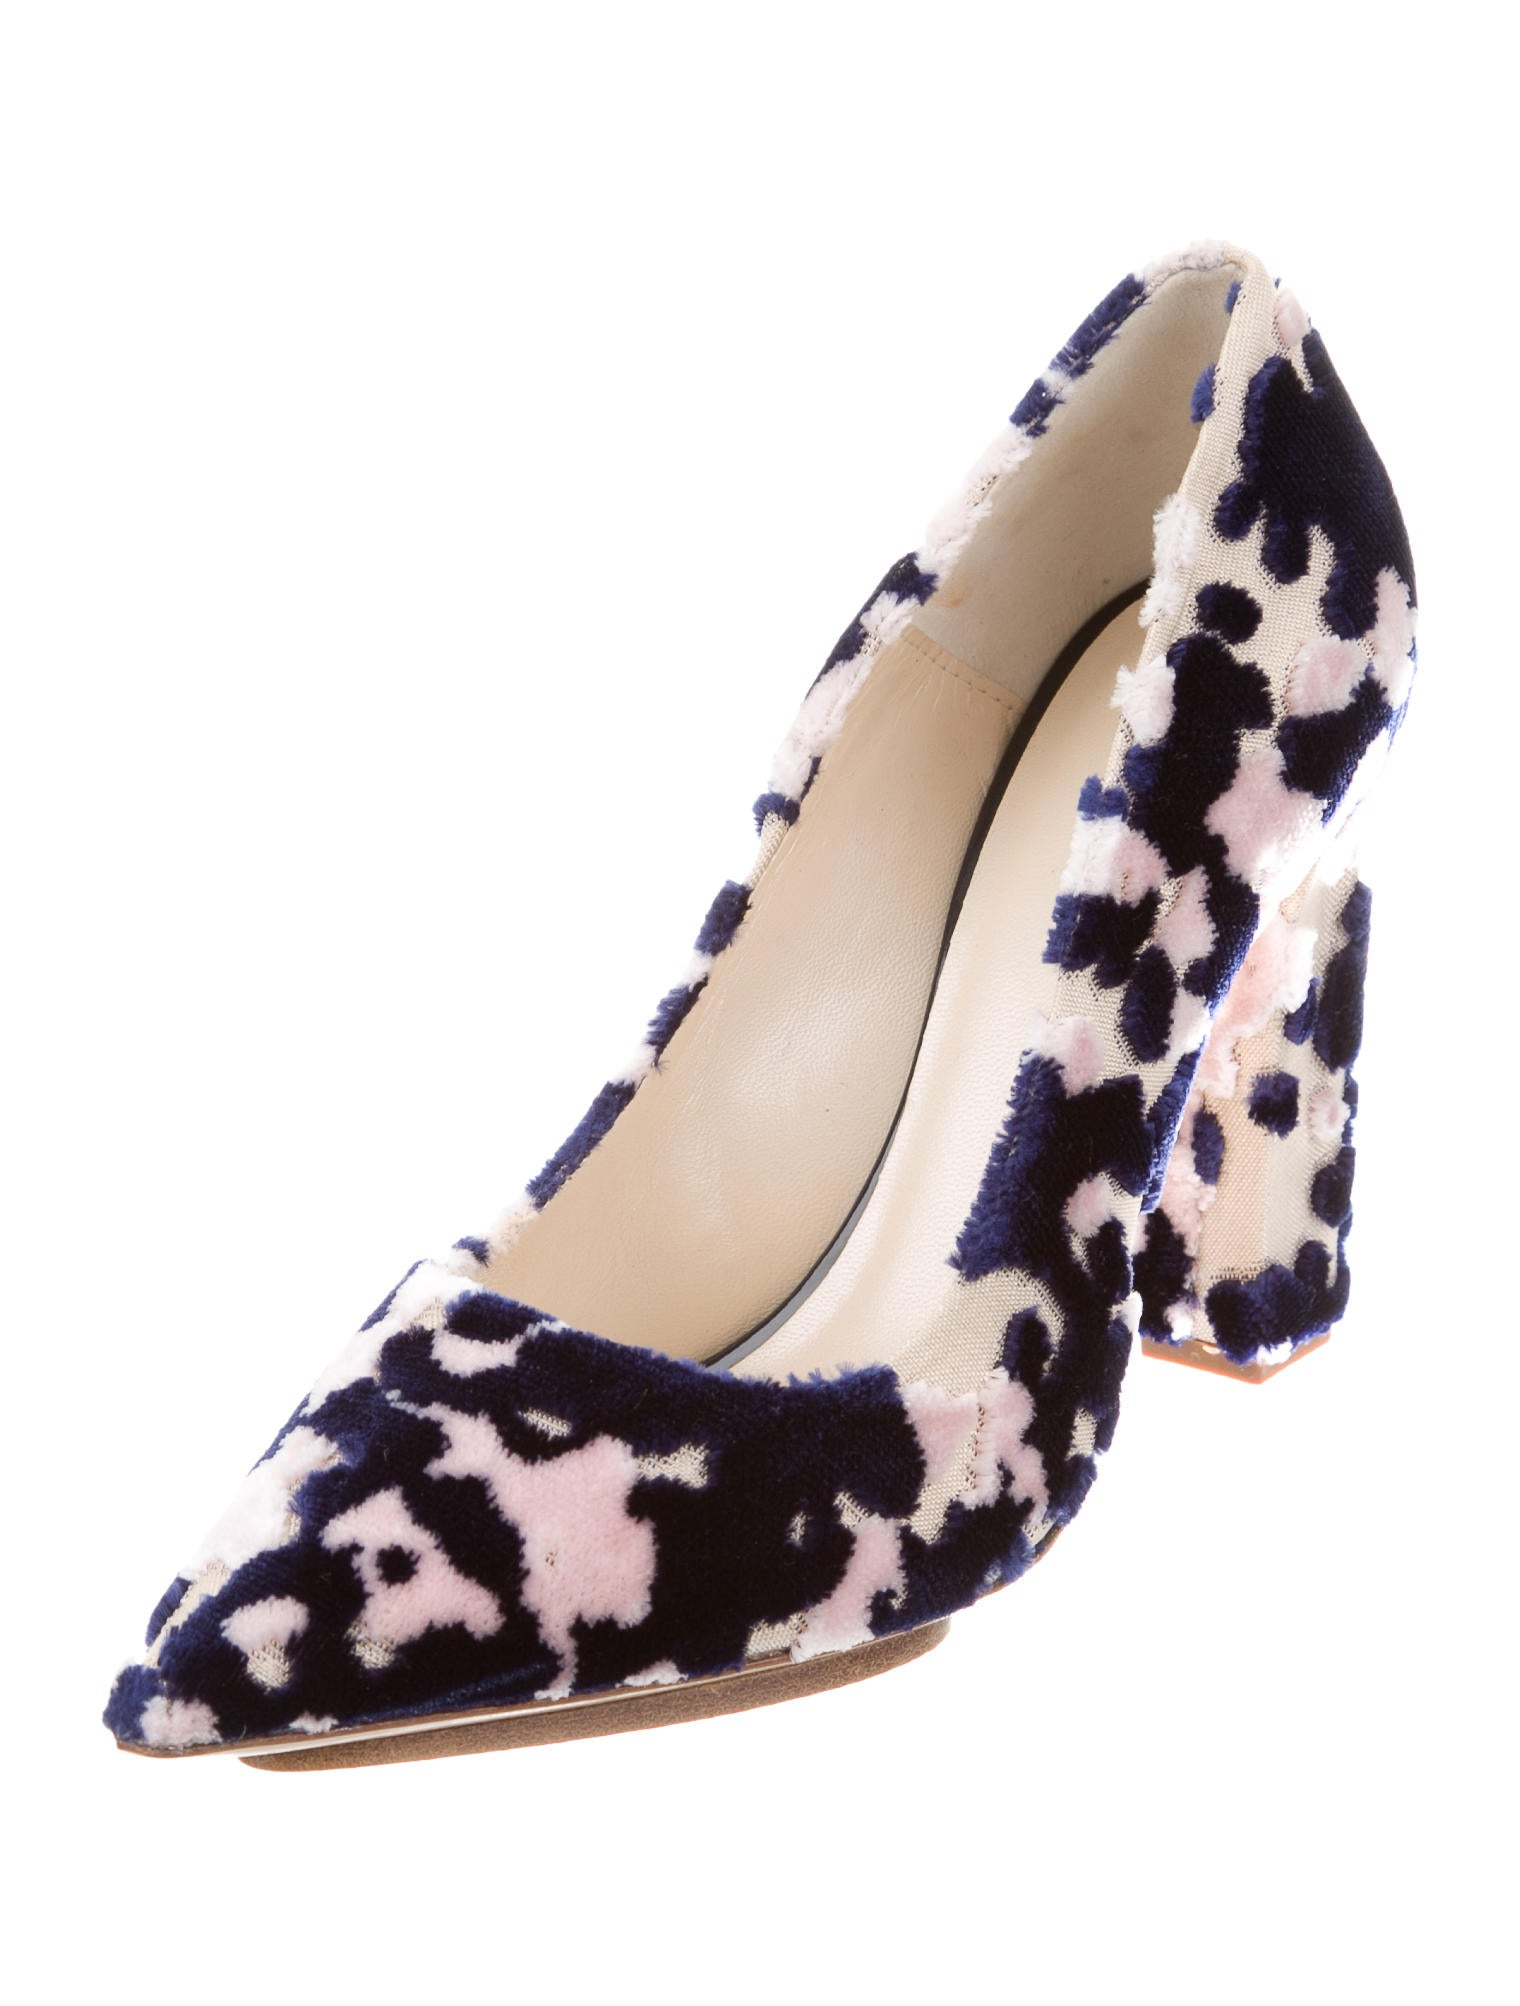 Delpozo 2017 Burnout Velvet Pumps quality for sale free shipping discount fashionable with credit card online cheap sale Cheapest browse cheap price 97eodJYPn